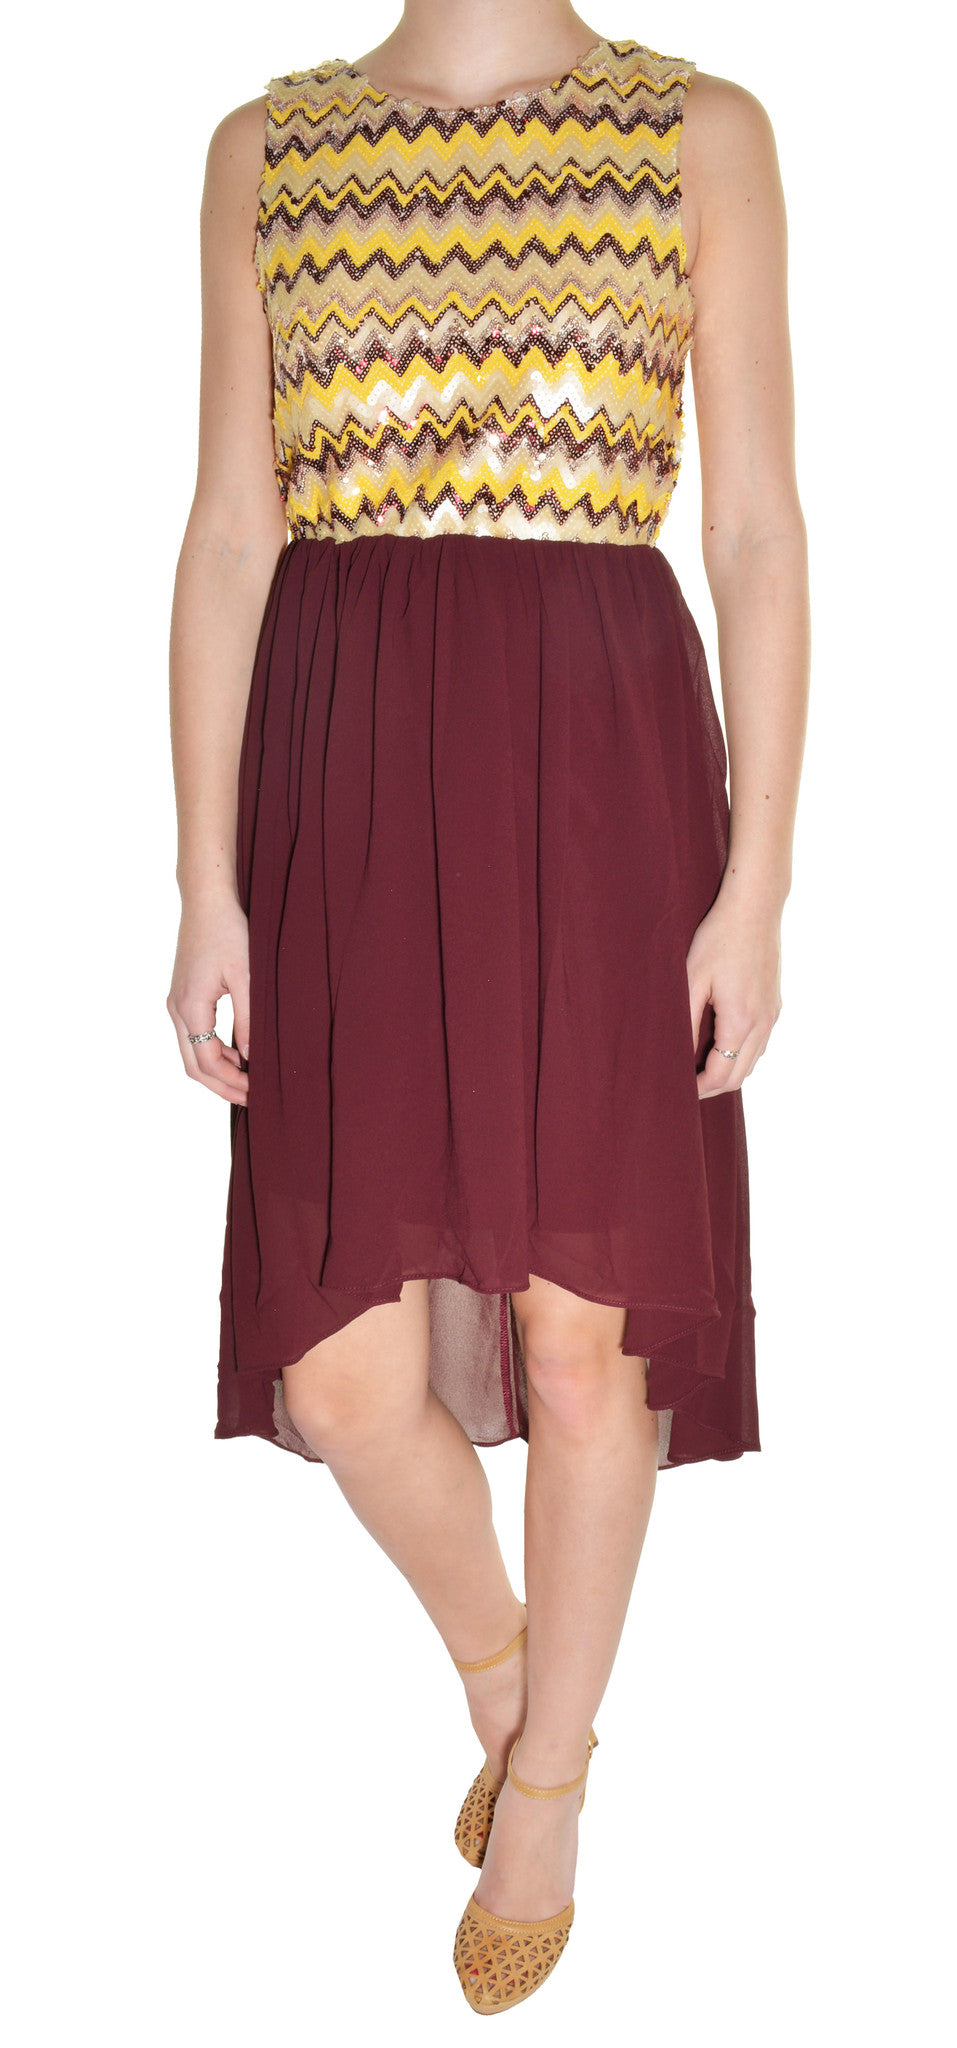 Sequin High Low Chiffon Cocktail Dress (Burgundy Red Gold) – The ...